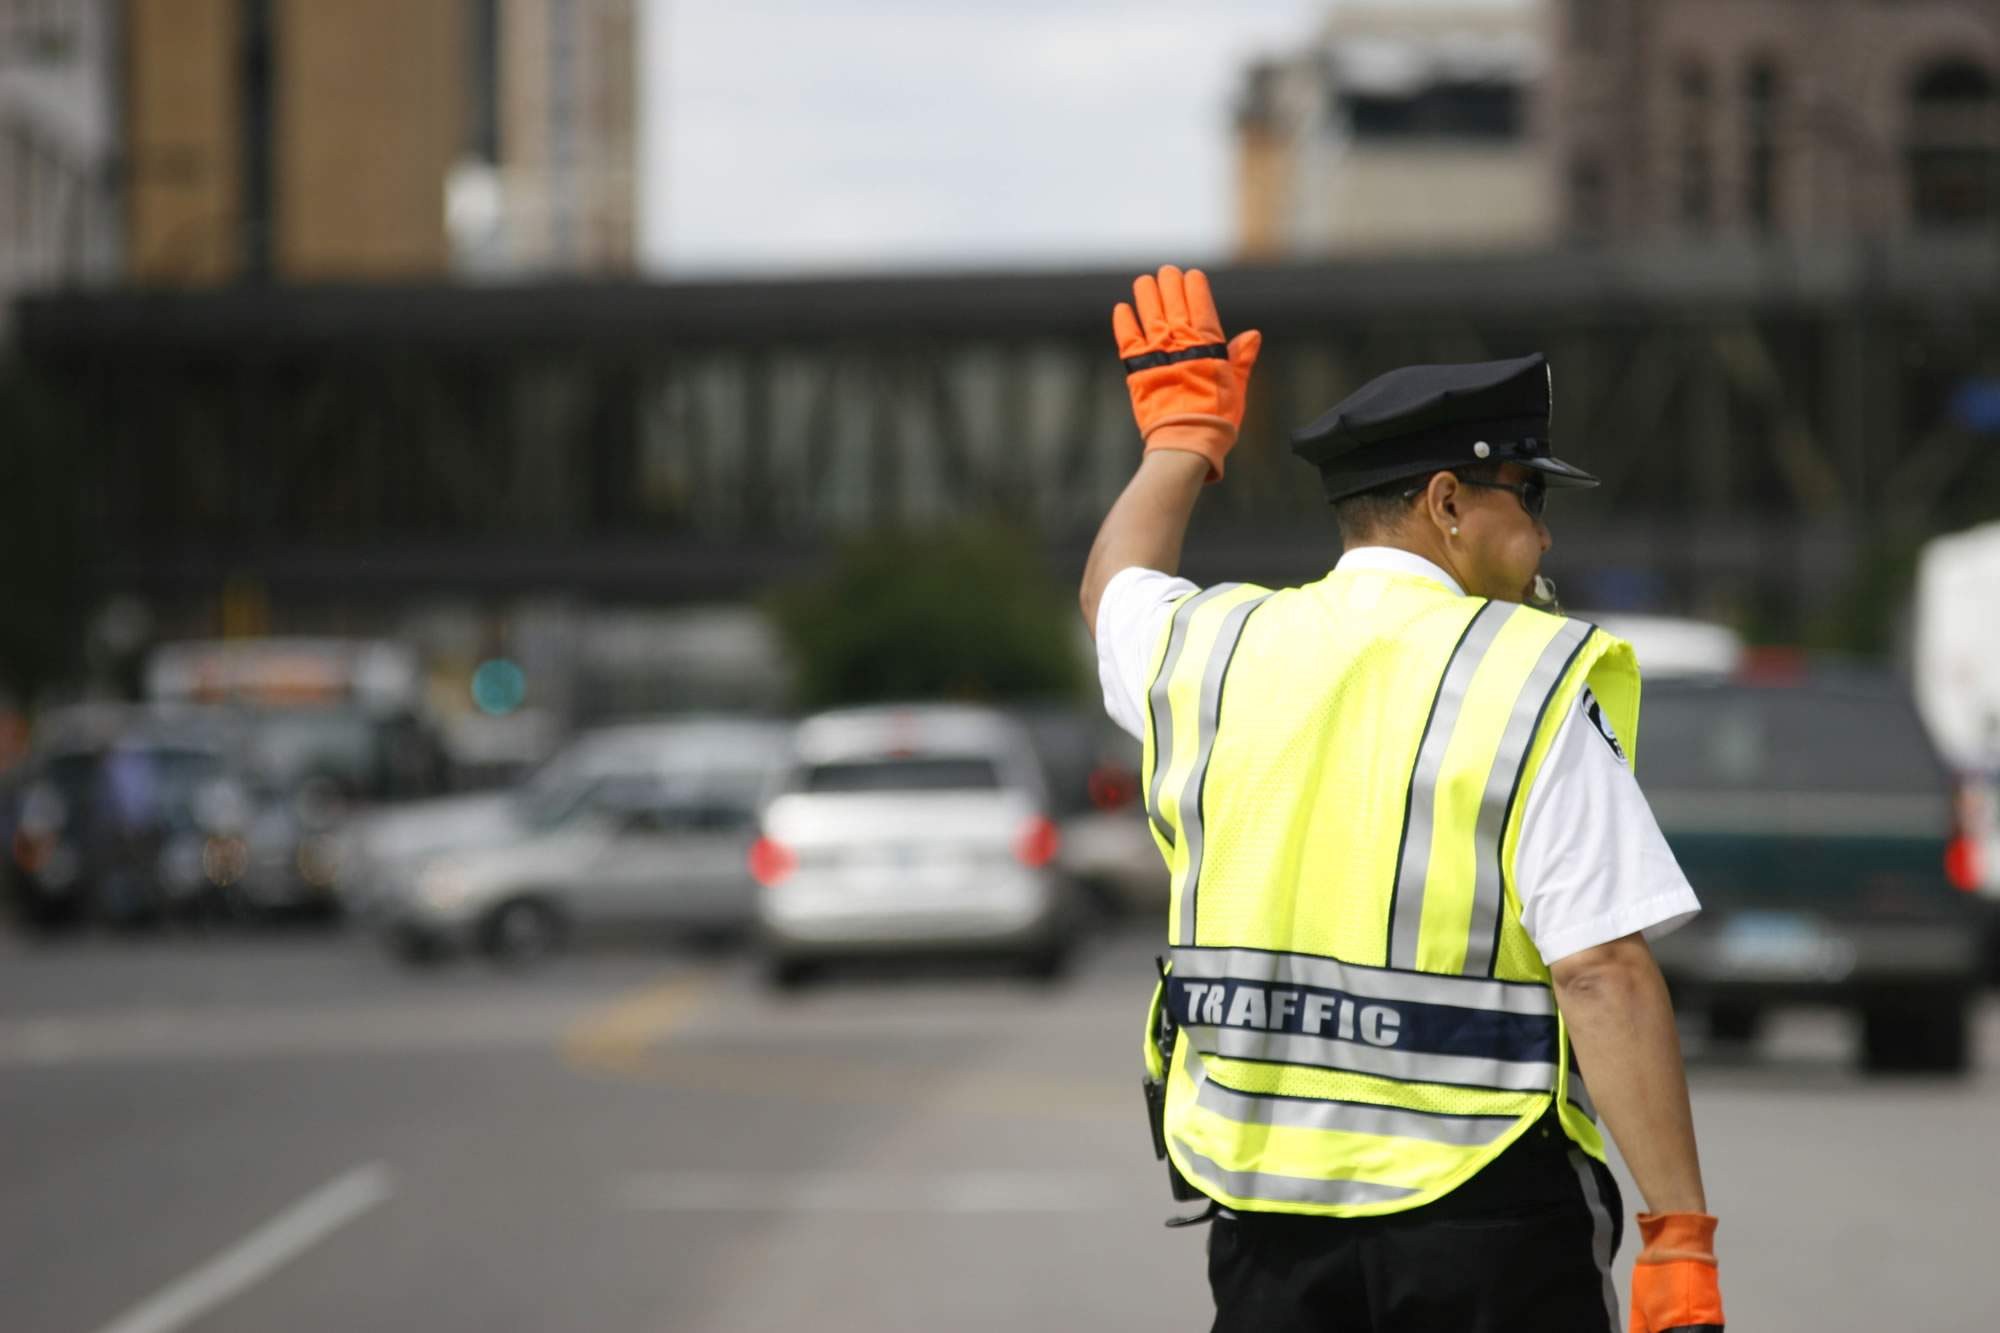 Traffic Officer Learnership for 2014